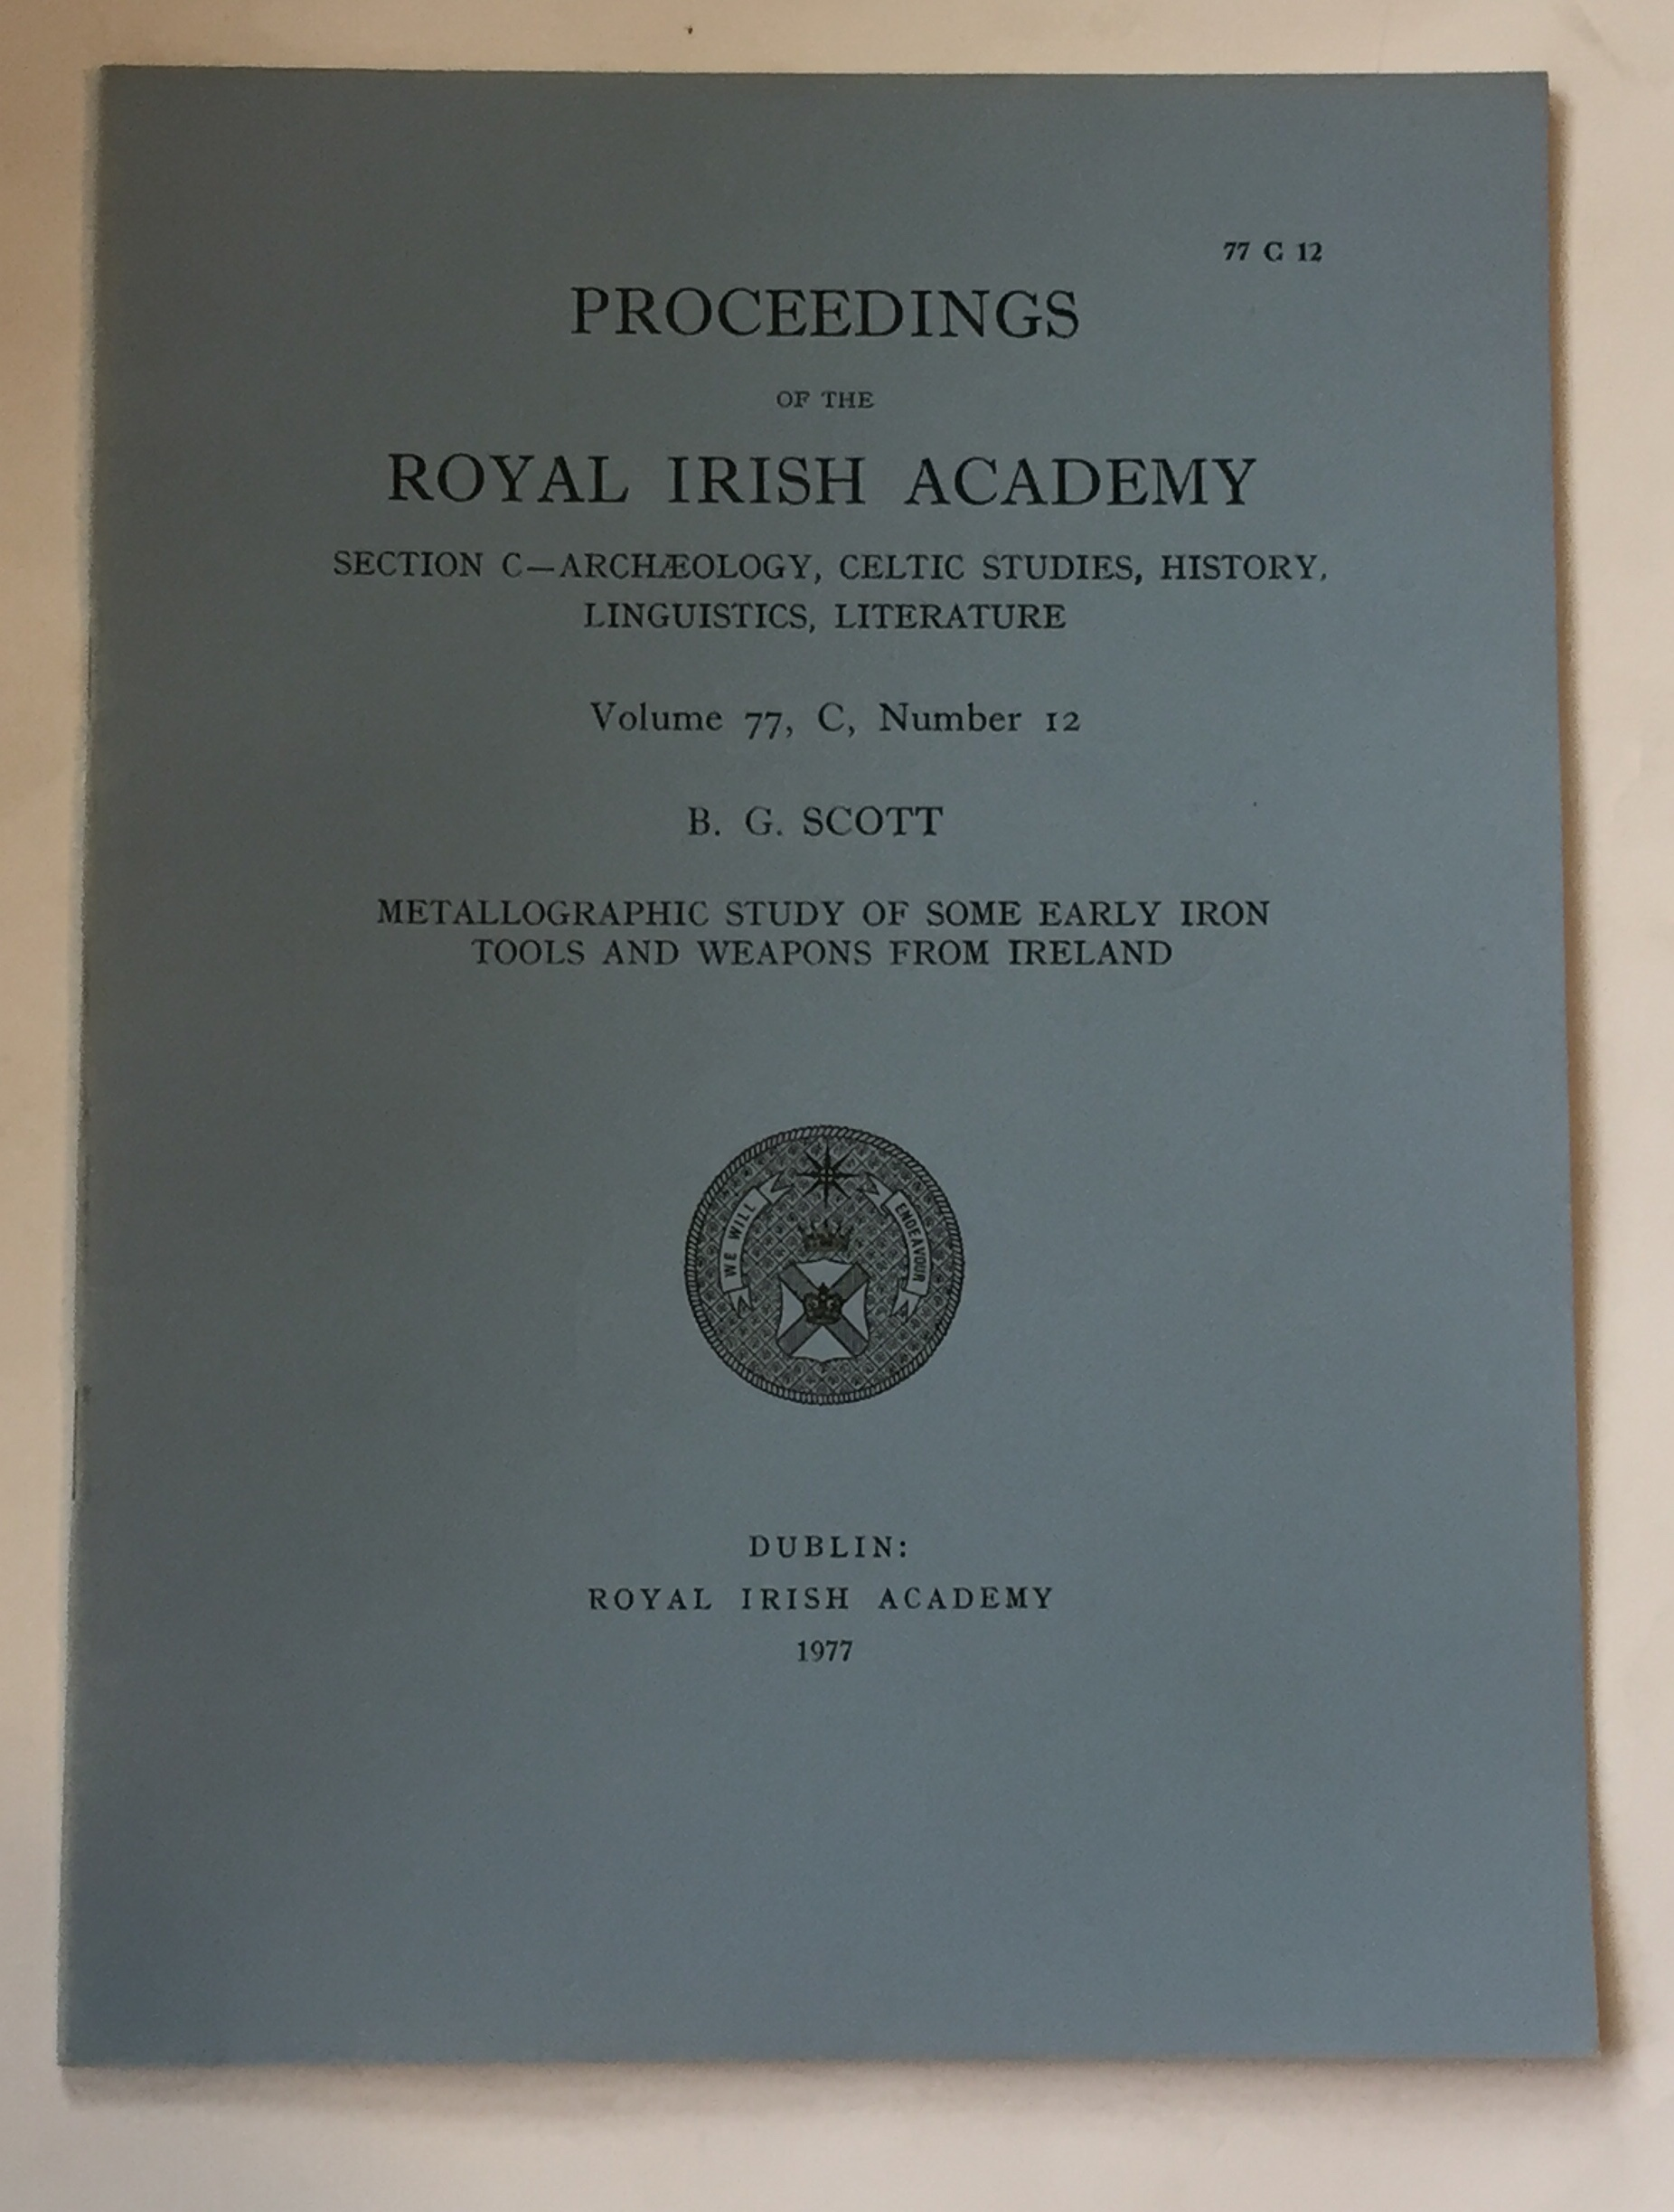 Proceedings of the Royal Irish Academy, Volume 77, Section C, No. 12 :Metallographic study of some early iron tools and weapons from Ireland